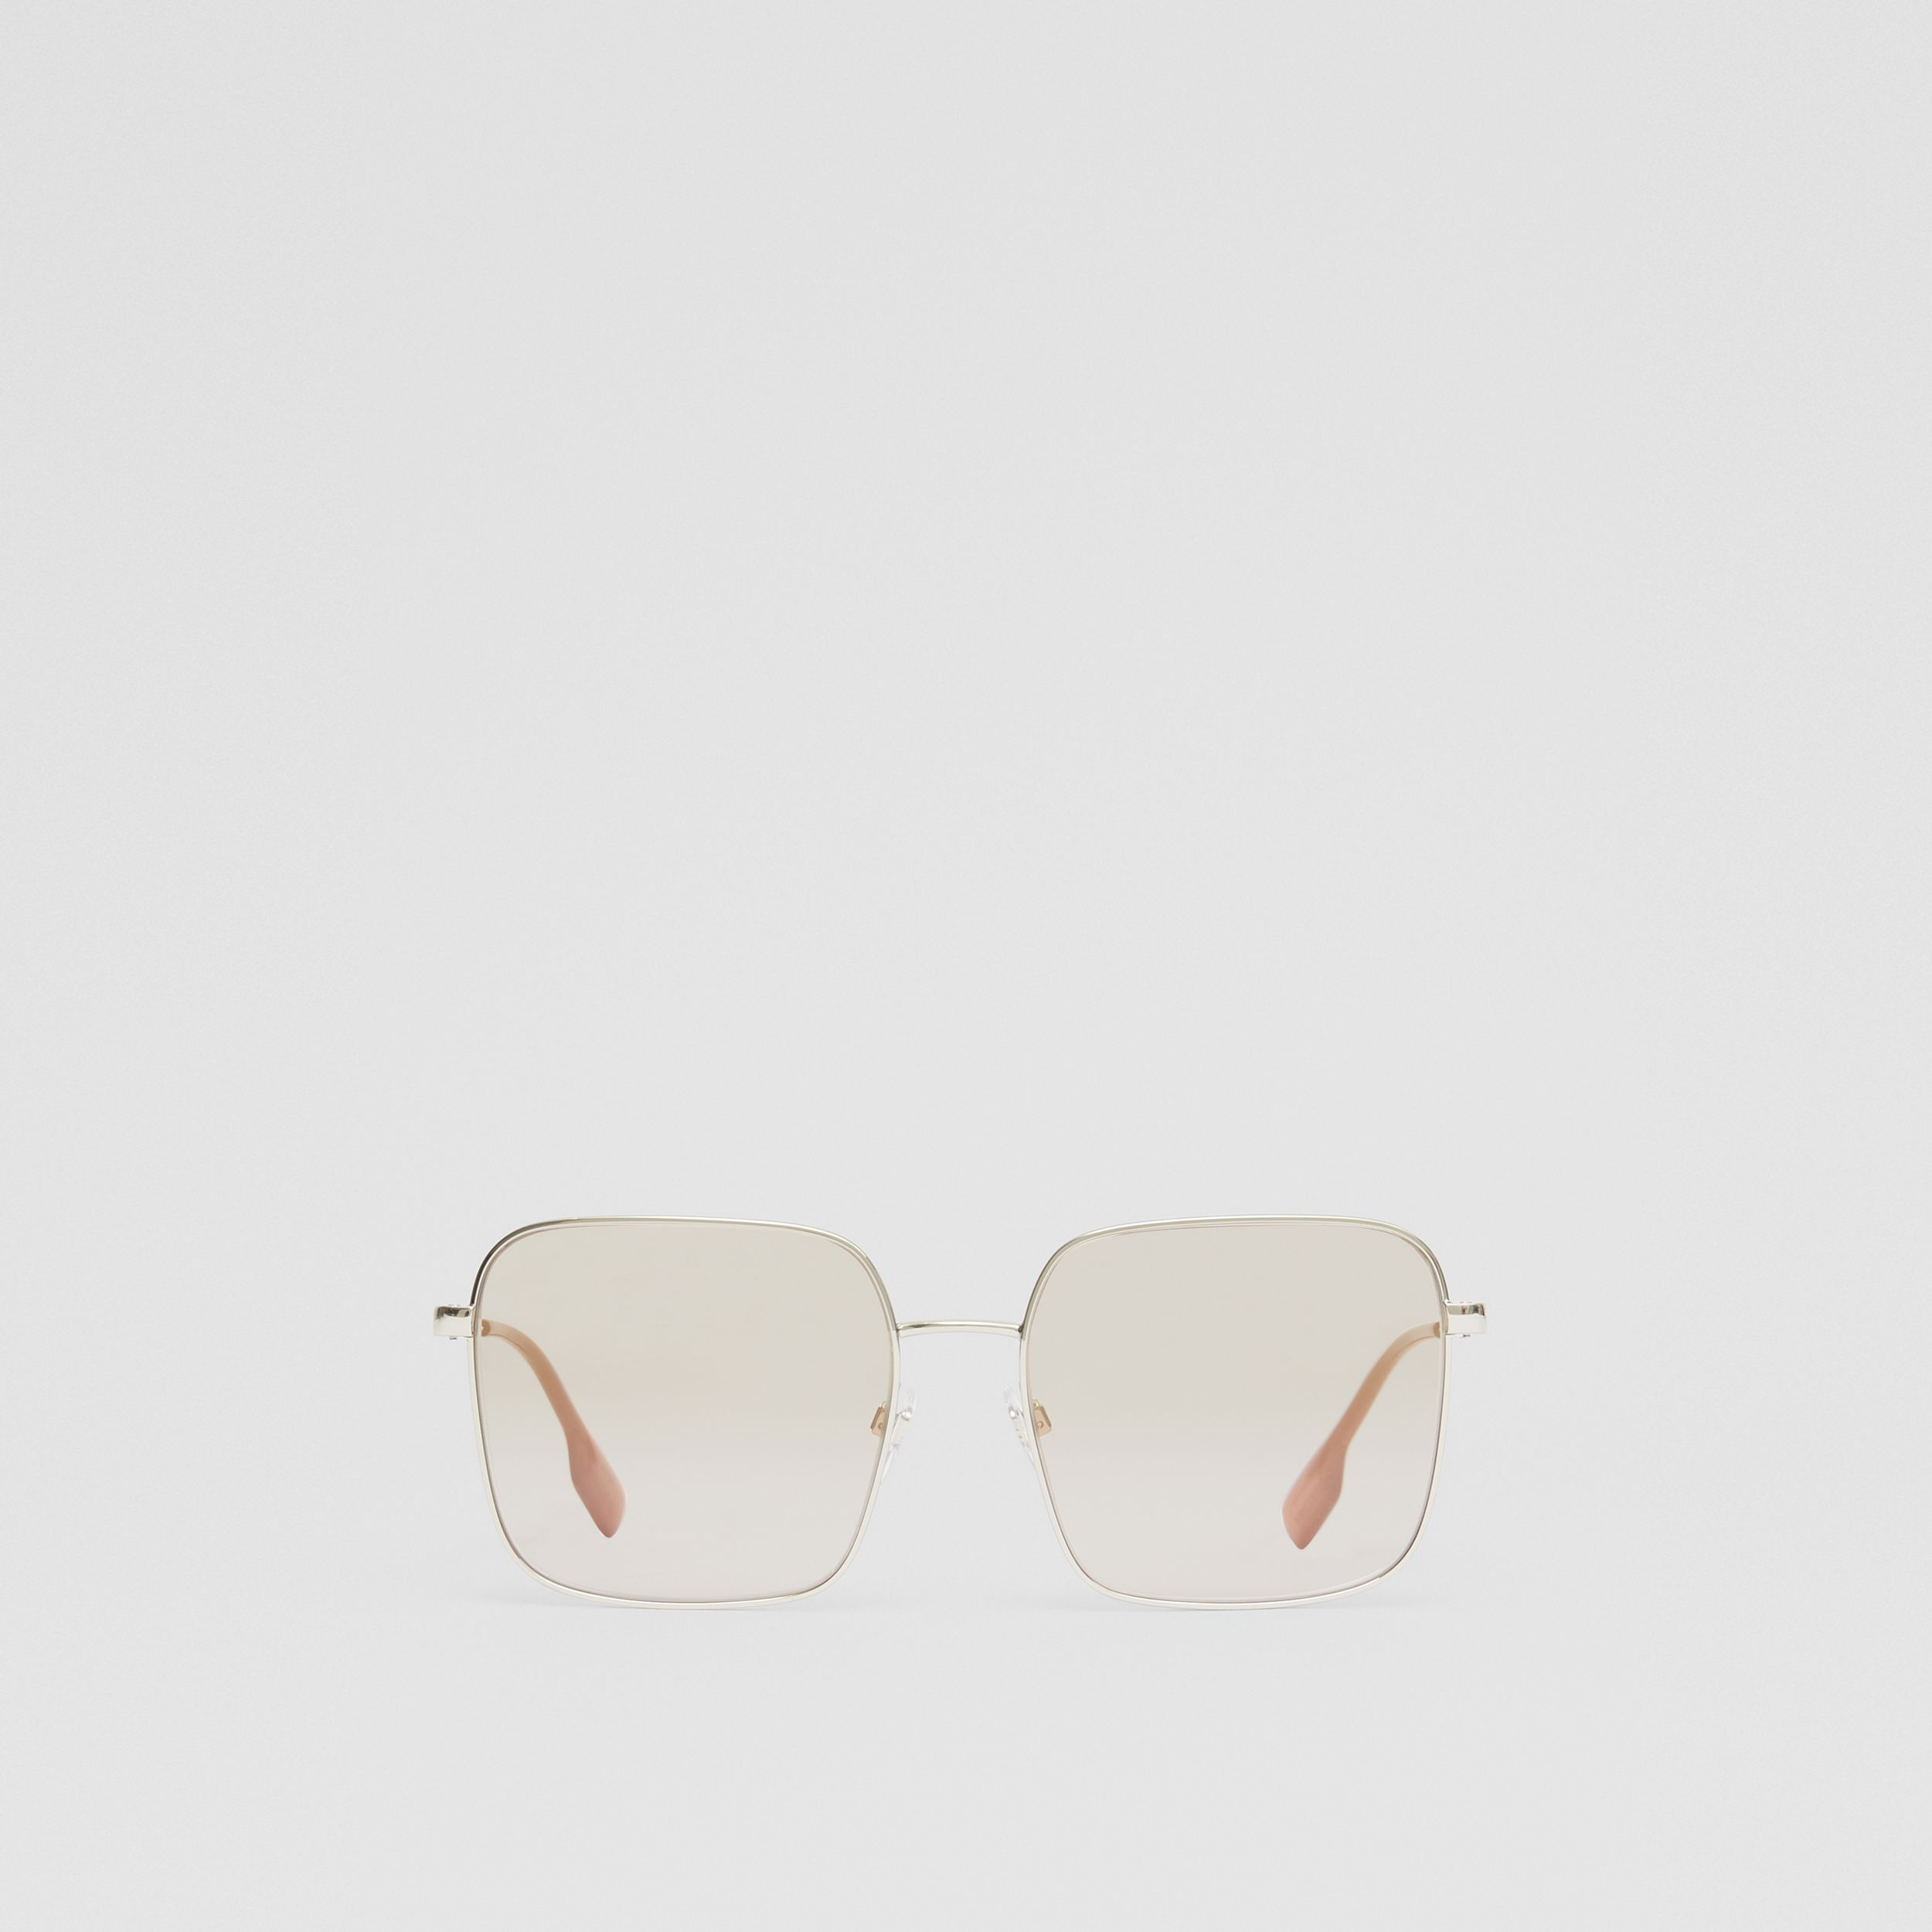 Oversized Square Frame Sunglasses in Nude Pink - Women | Burberry - 1